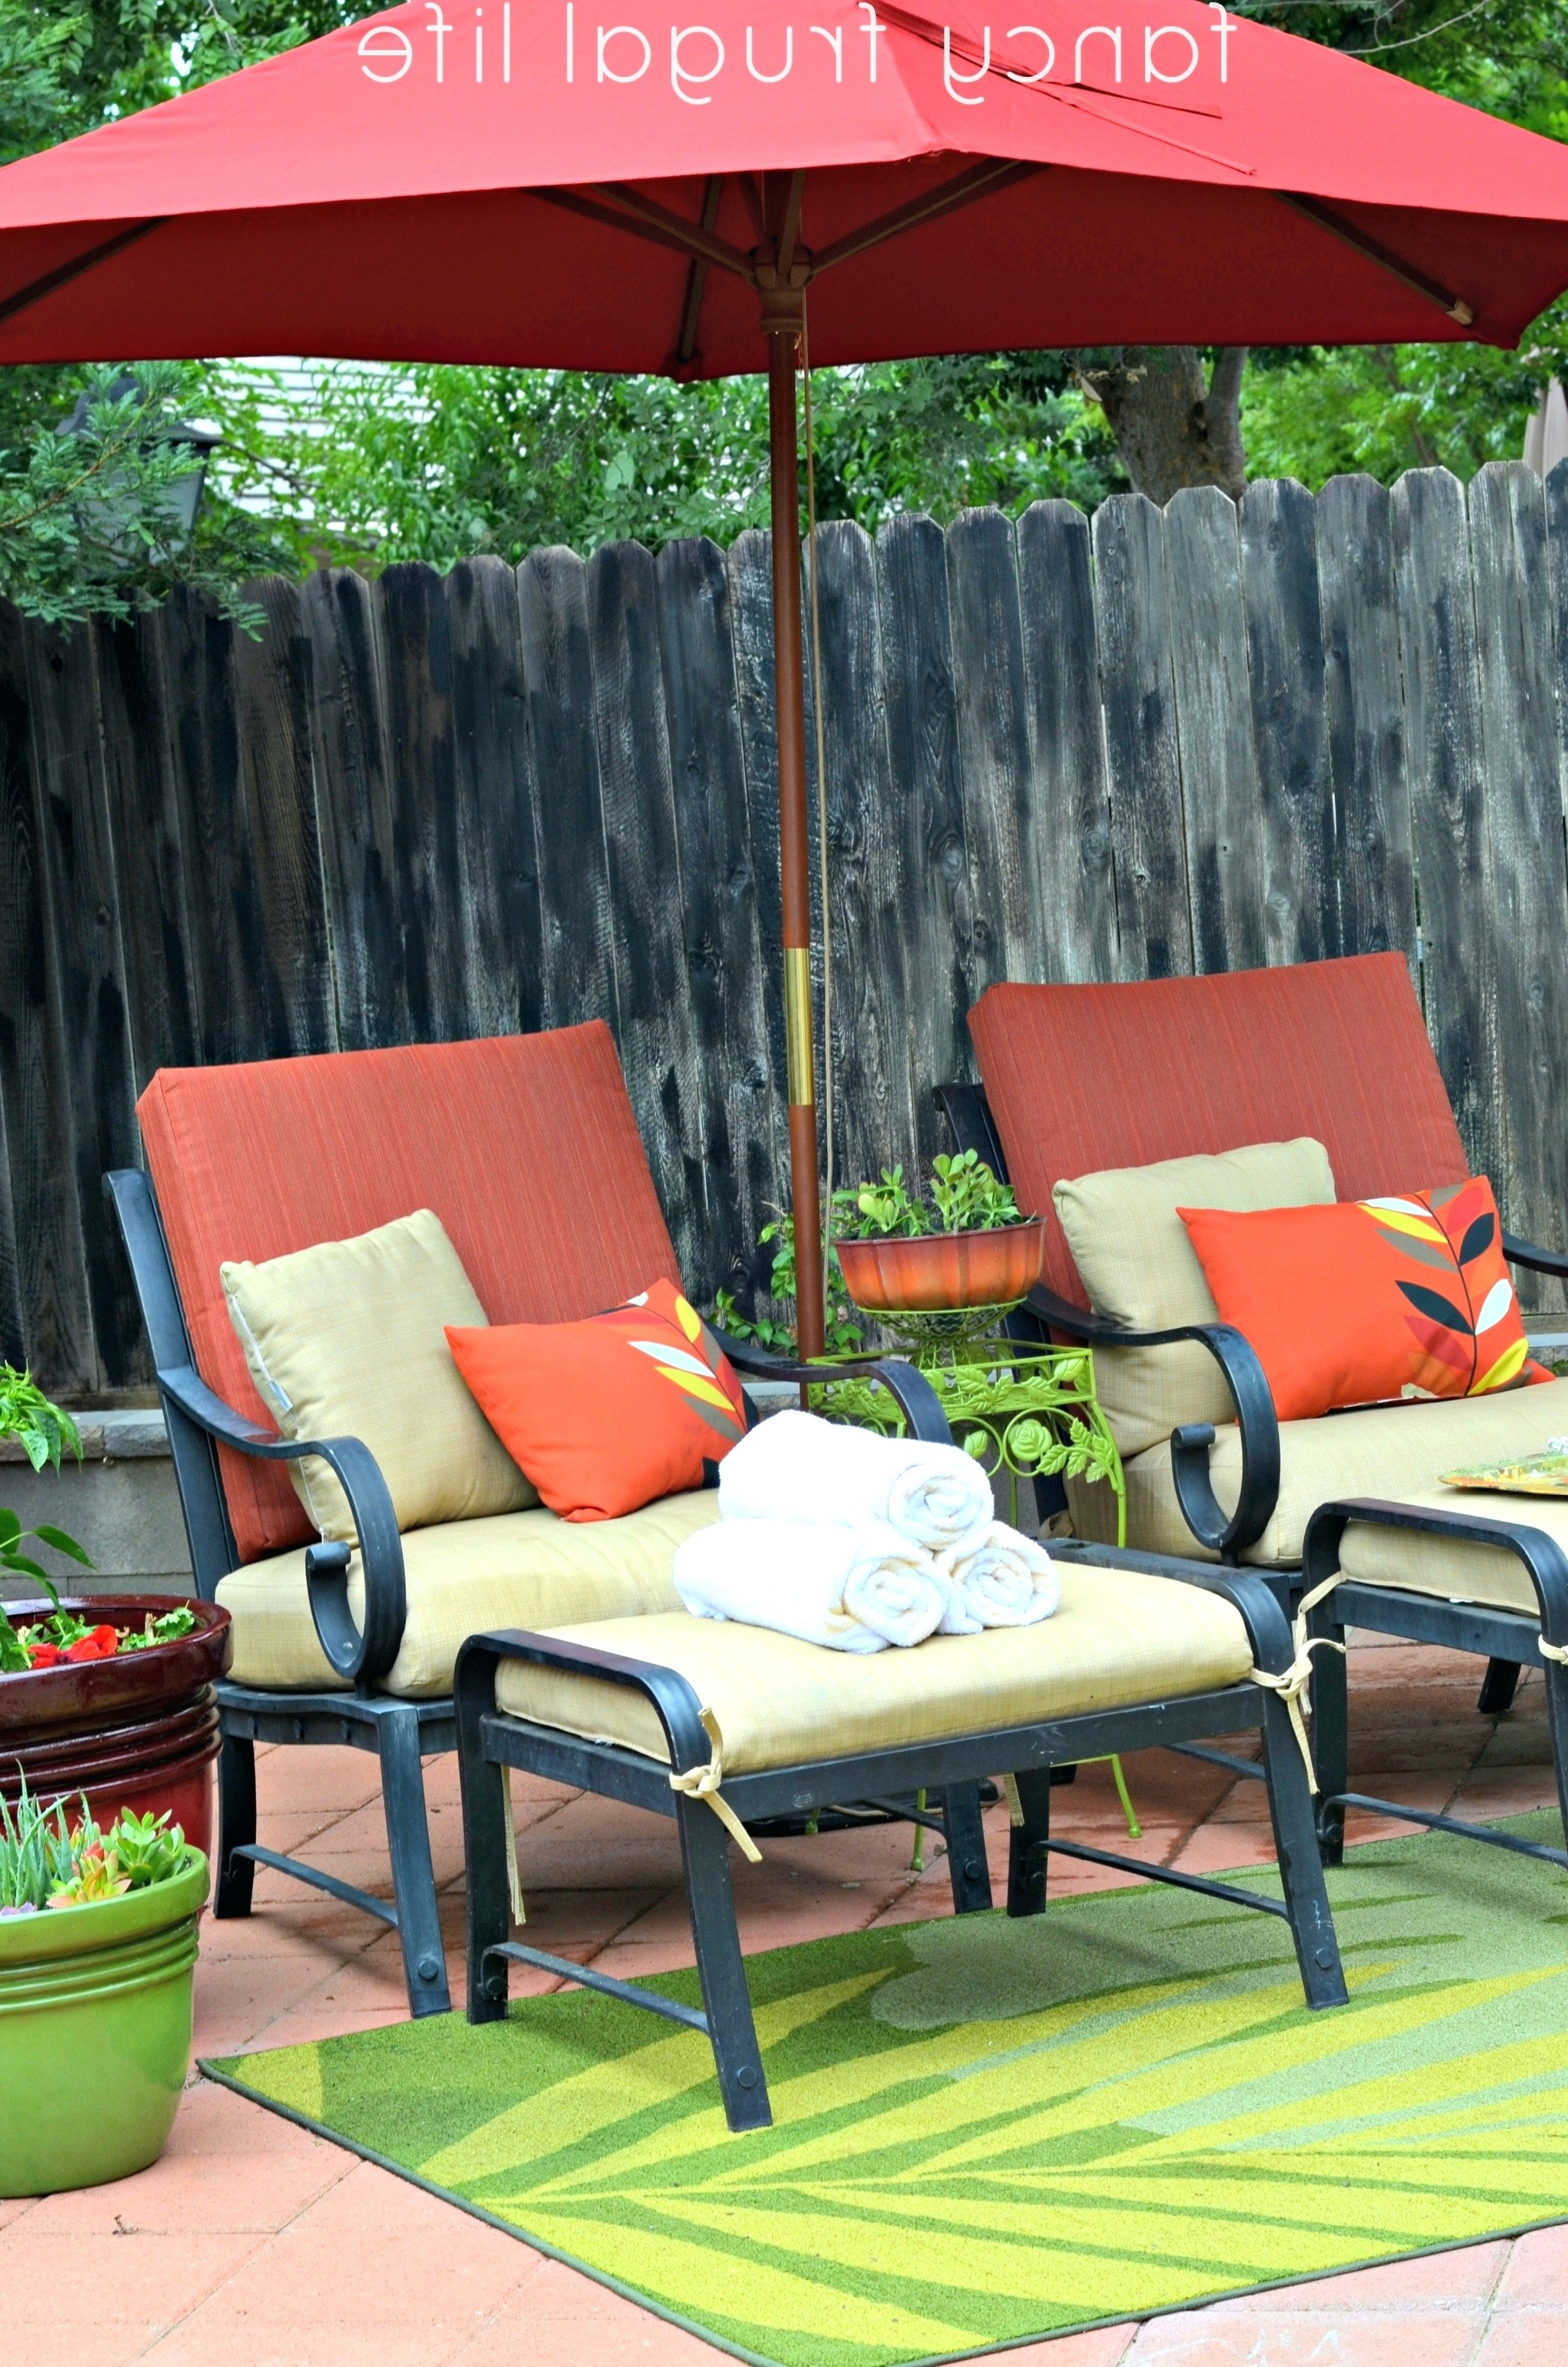 20 Elegant Ideas For Walmart Patio Chair Seat Cushions Regarding Current Jamaica Outdoor Chaise Lounges (View 1 of 25)